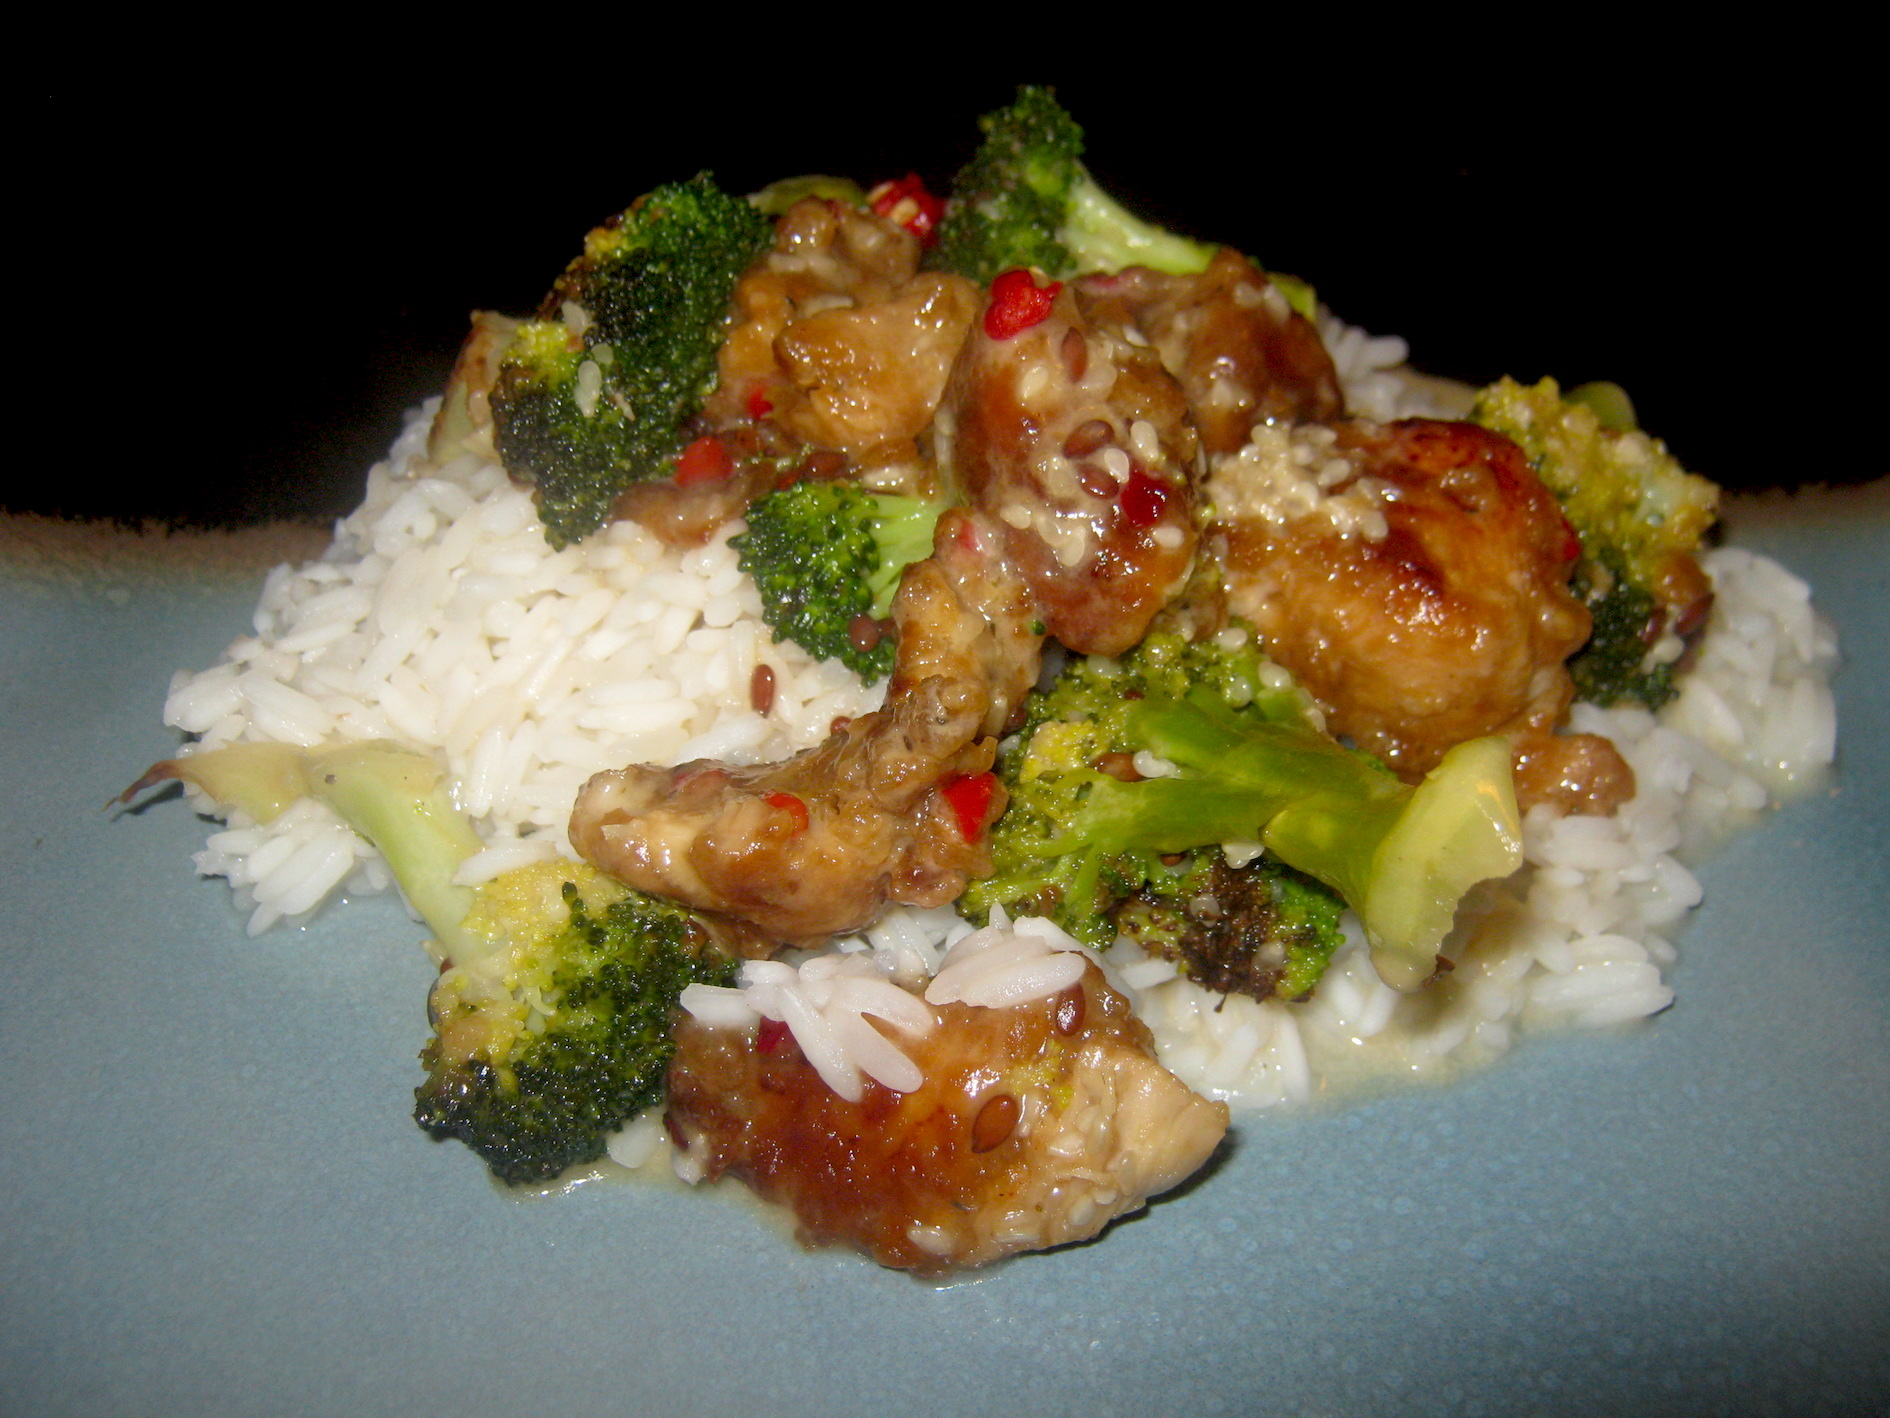 Broccoli Honey Chicken and a Bed of rice